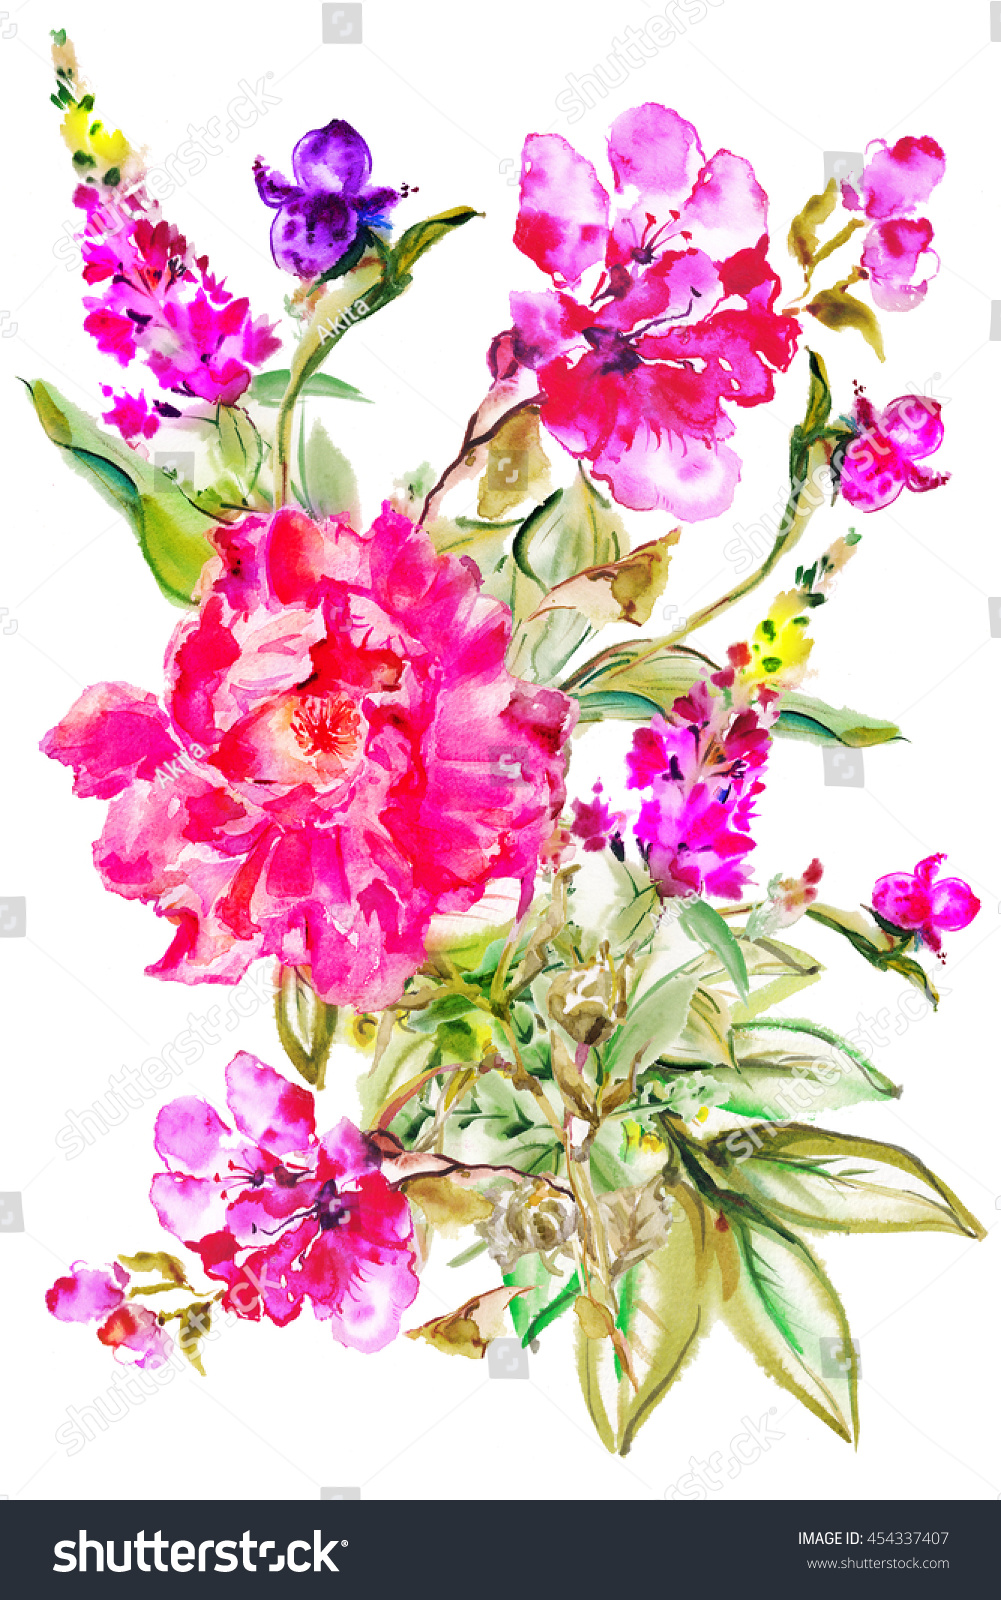 Flower Watercolor Background Floral Illustration Exotic Stock